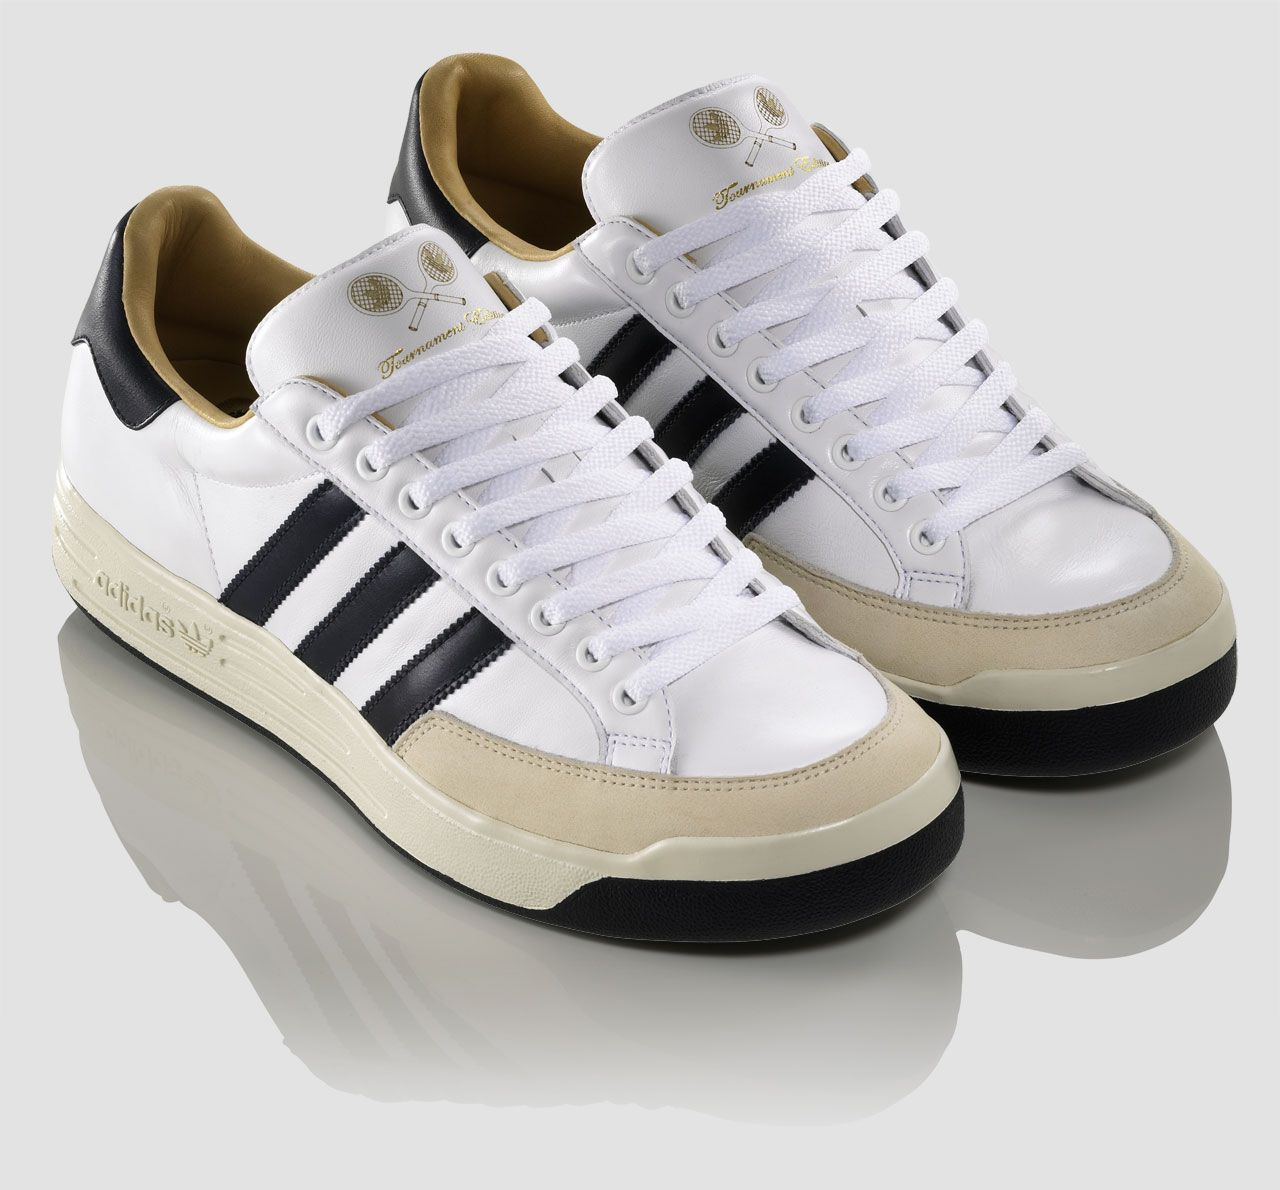 separation shoes 13793 09faa Adidas Nastase Super Leather